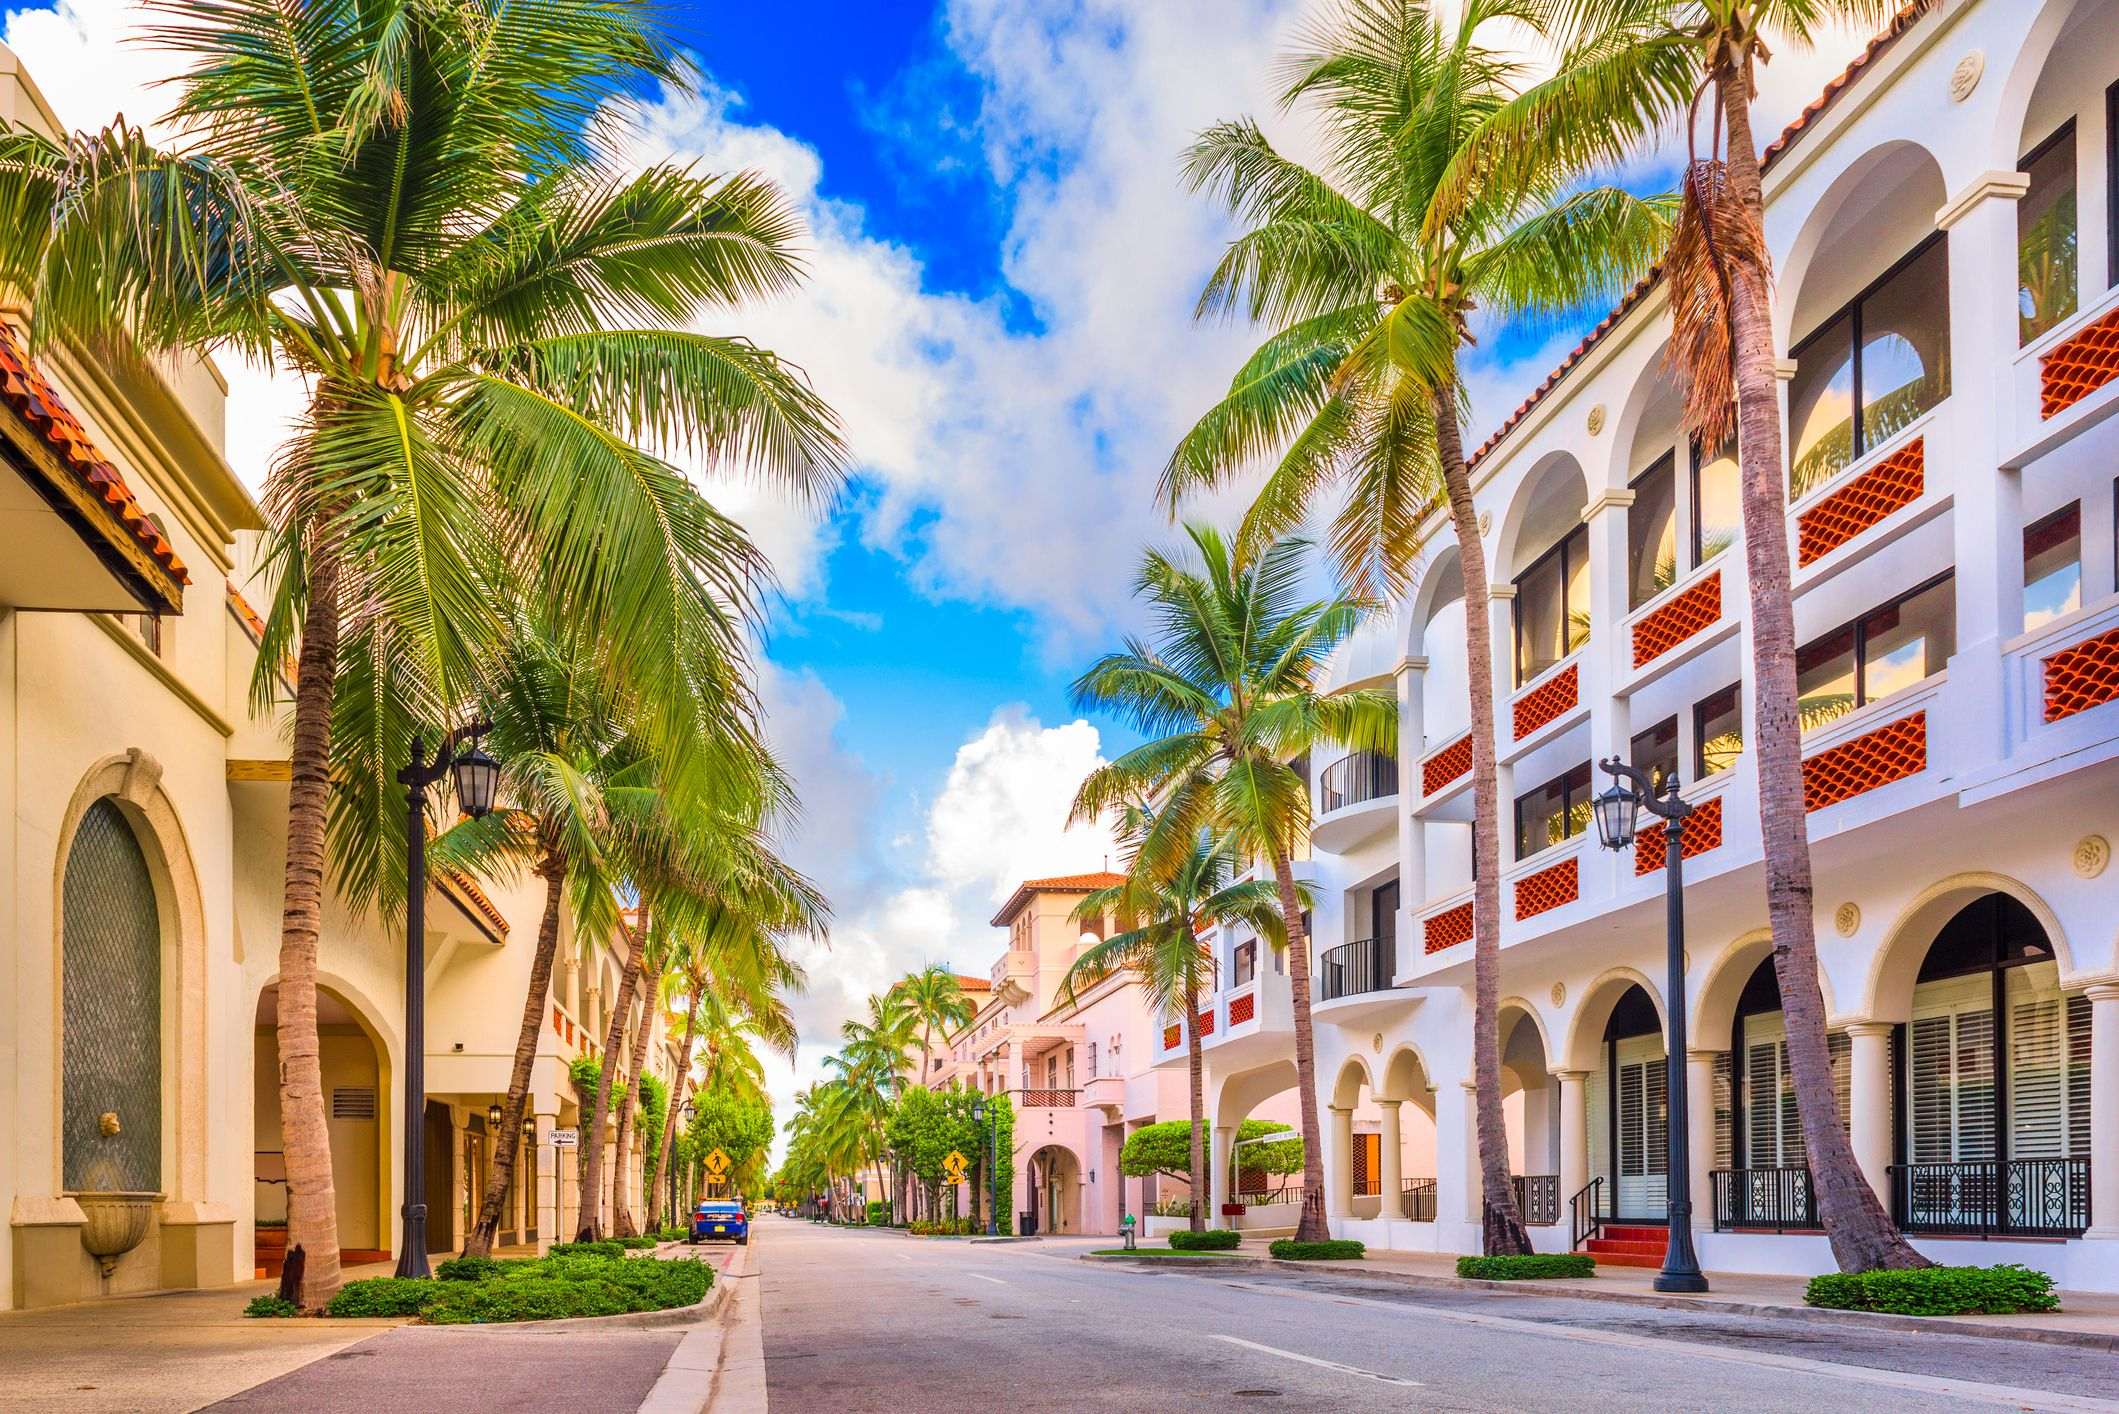 Cucina Palm Beach Palm Beach Florida Travel Guide Best Restaurants Bars Hotels